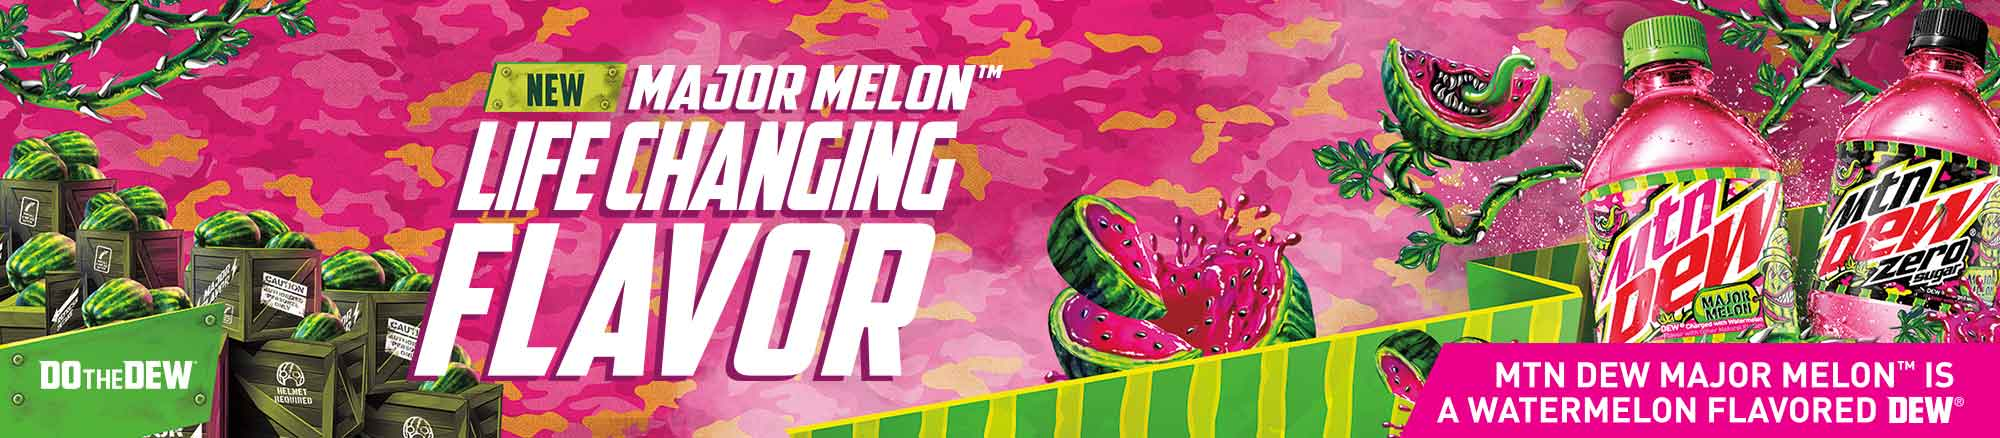 Mtn-Dew-Major-Melon.jpg